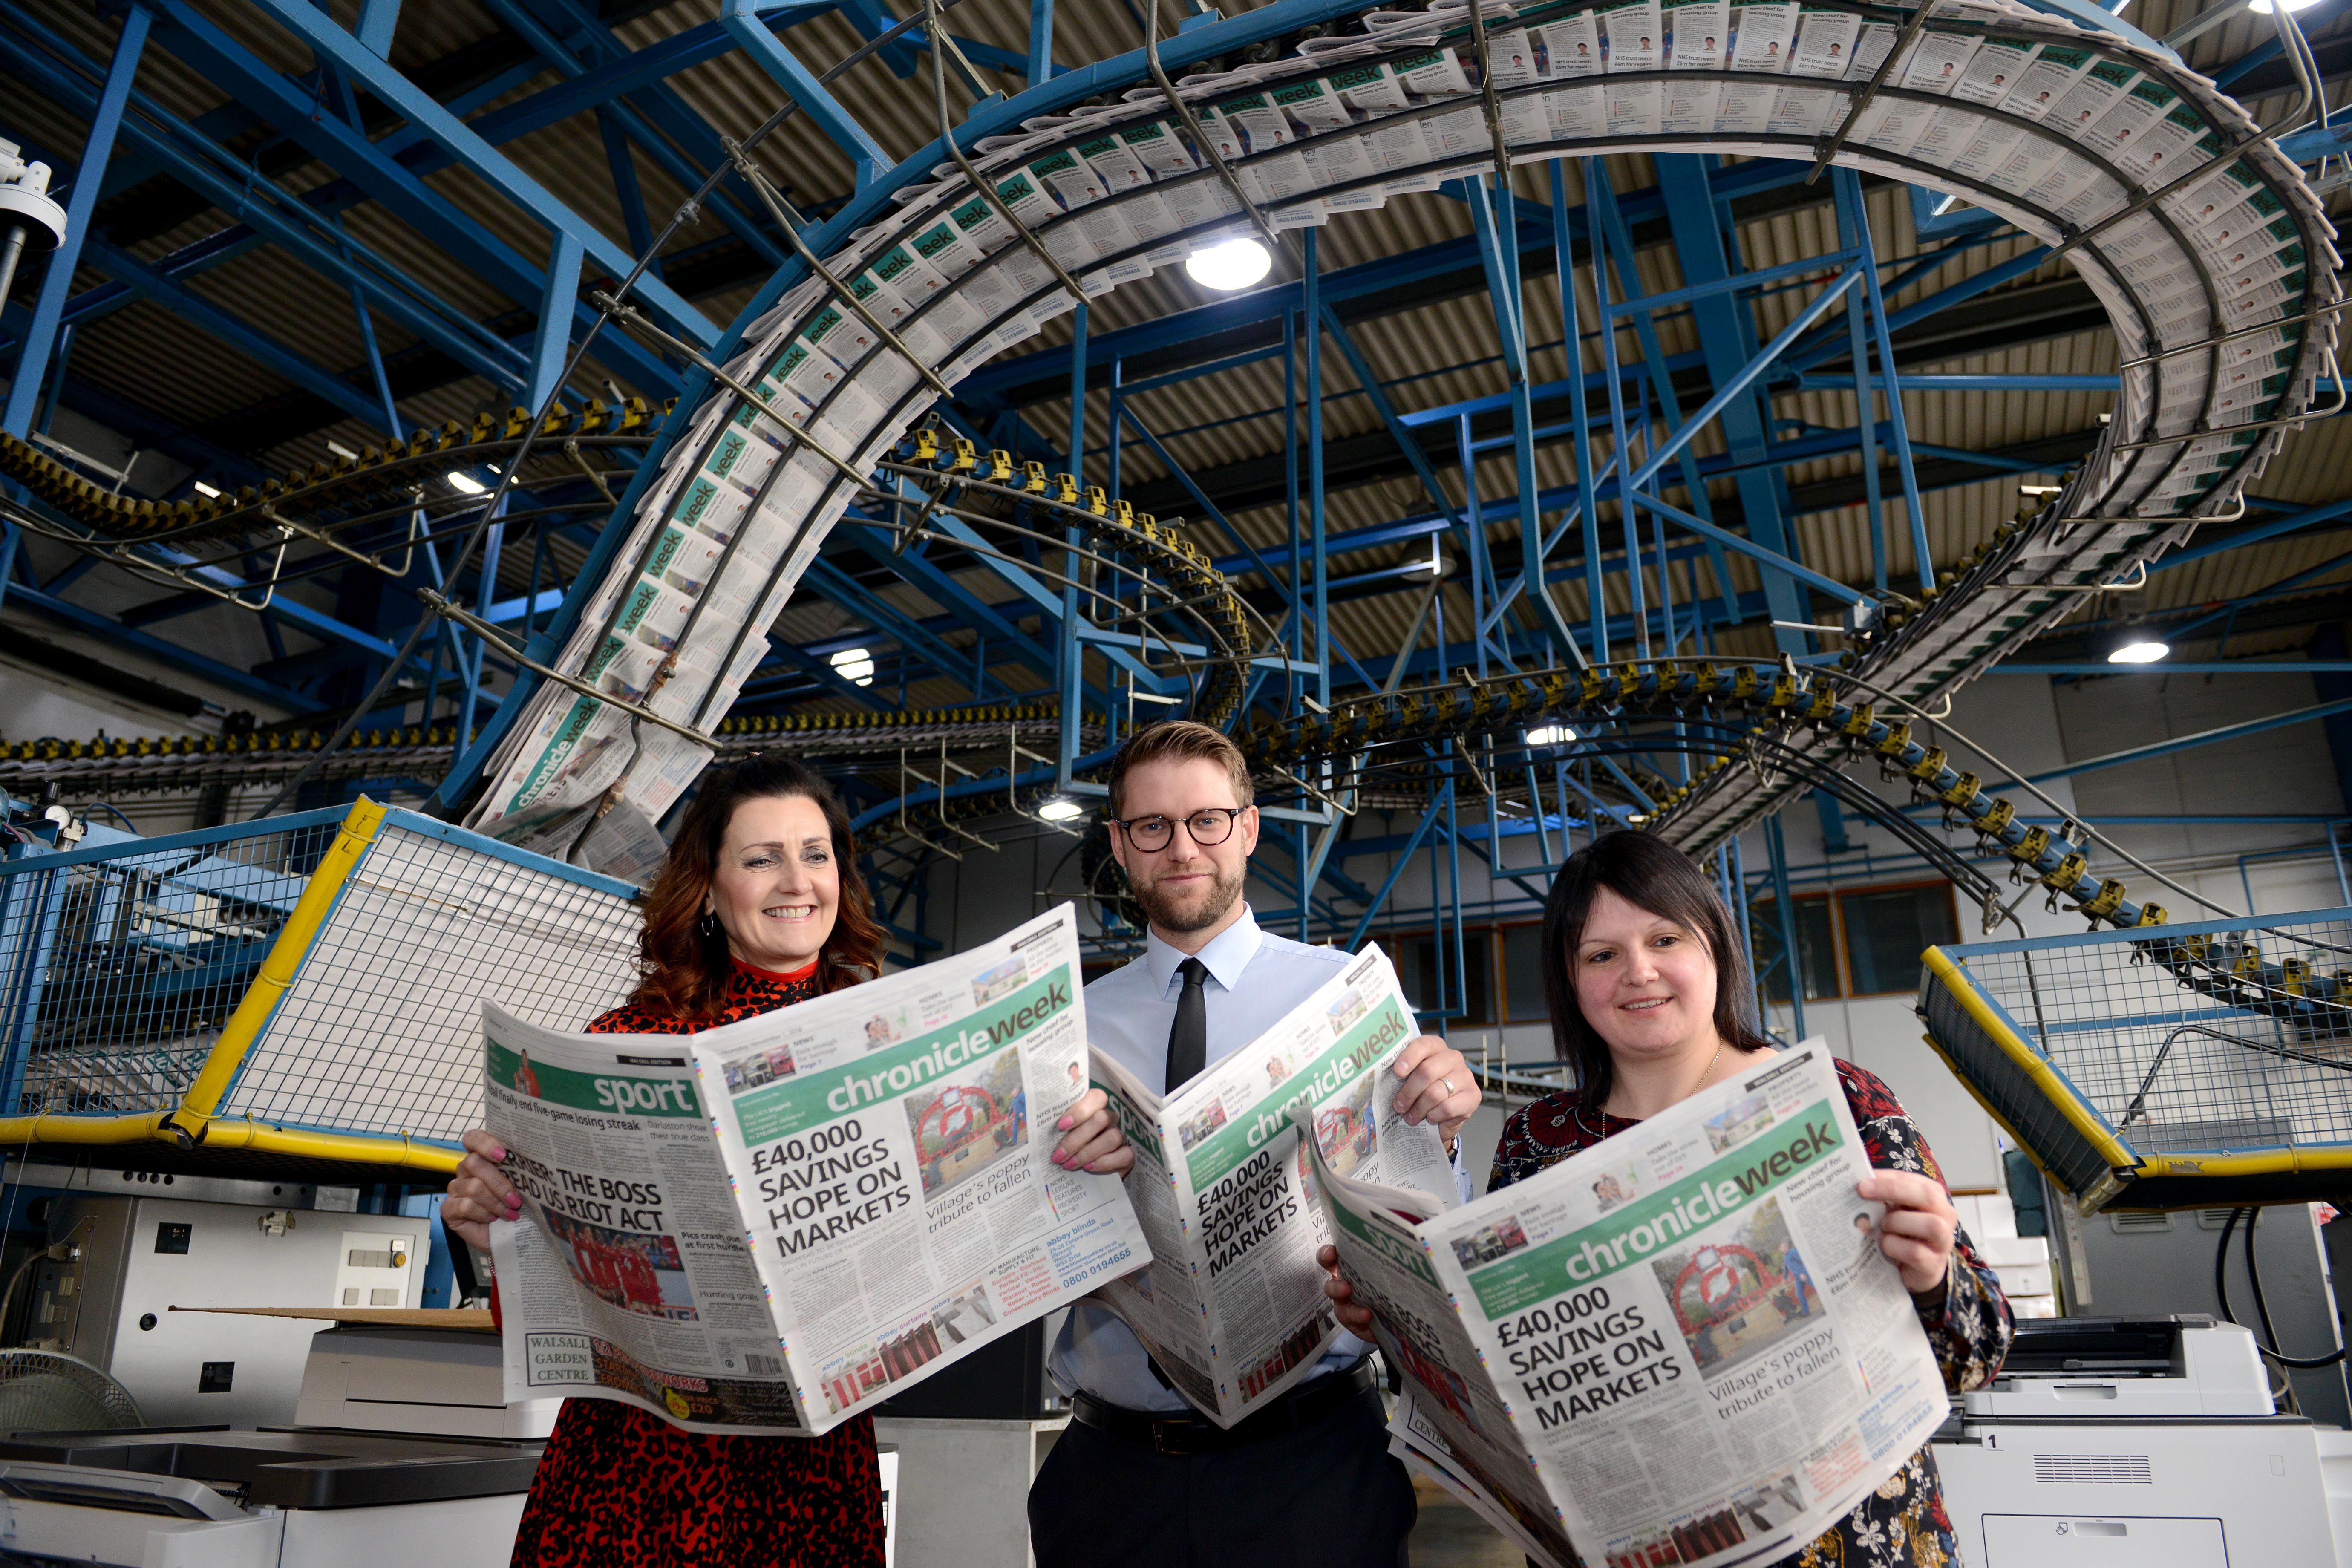 Midland News Association Launches Chronicle Week